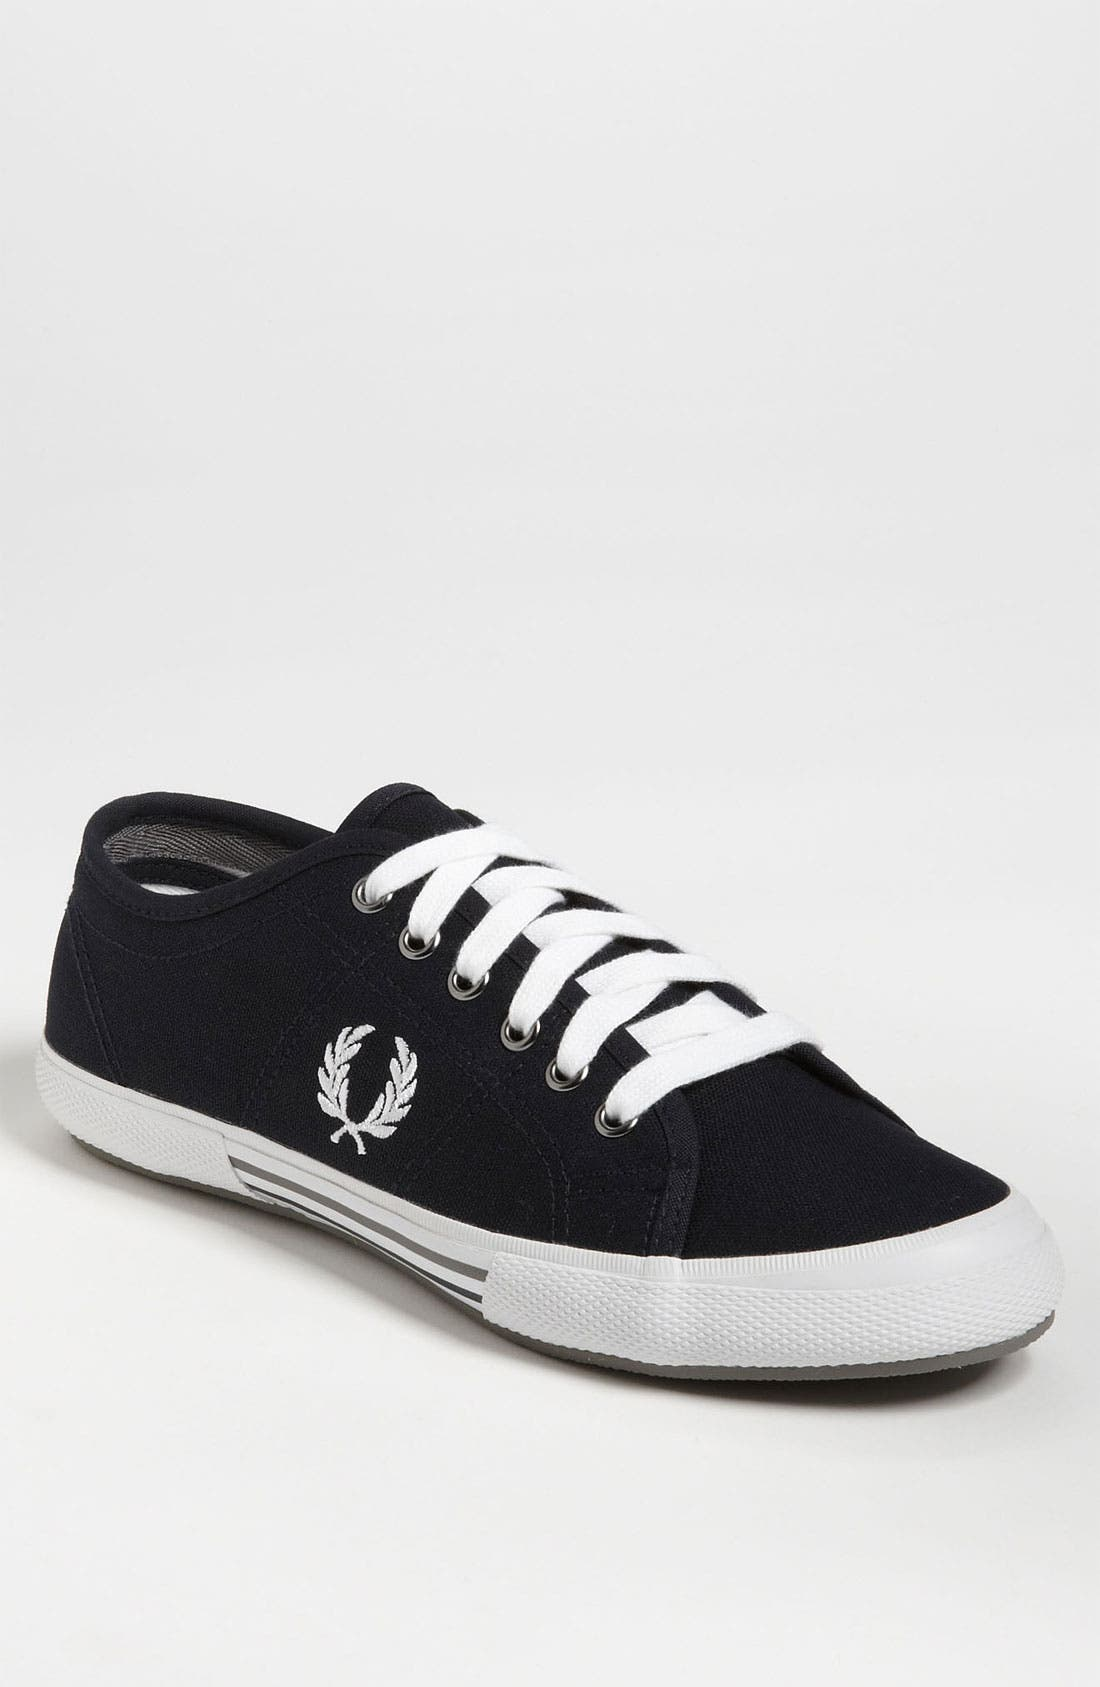 Alternate Image 1 Selected - Fred Perry Vintage Canvas Tennis Sneaker